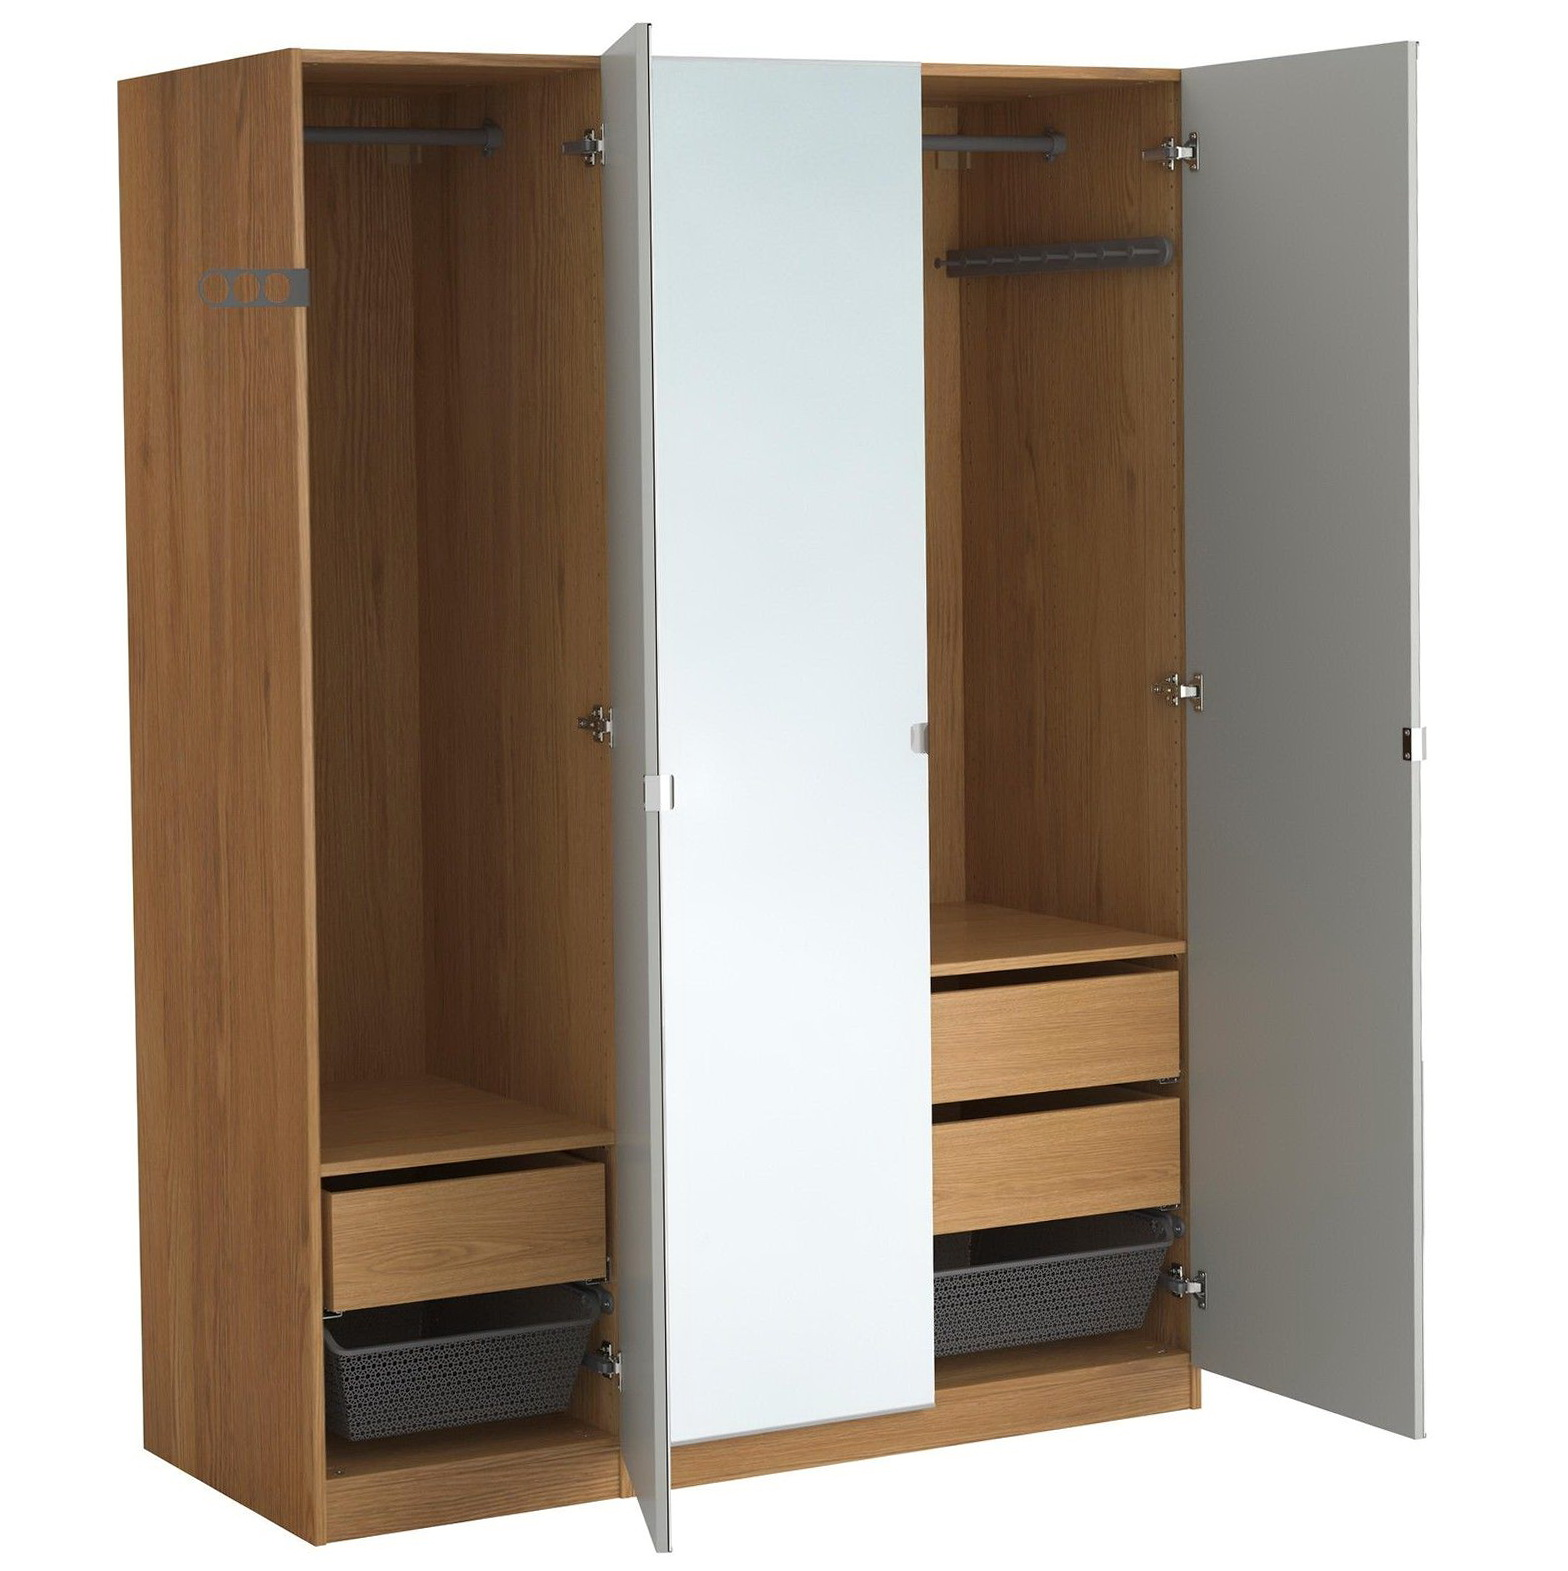 wardrobes best item frame wood ideas minimalist shape closet wardrobe furniture brown mirror design body door models mirrored luxurious top